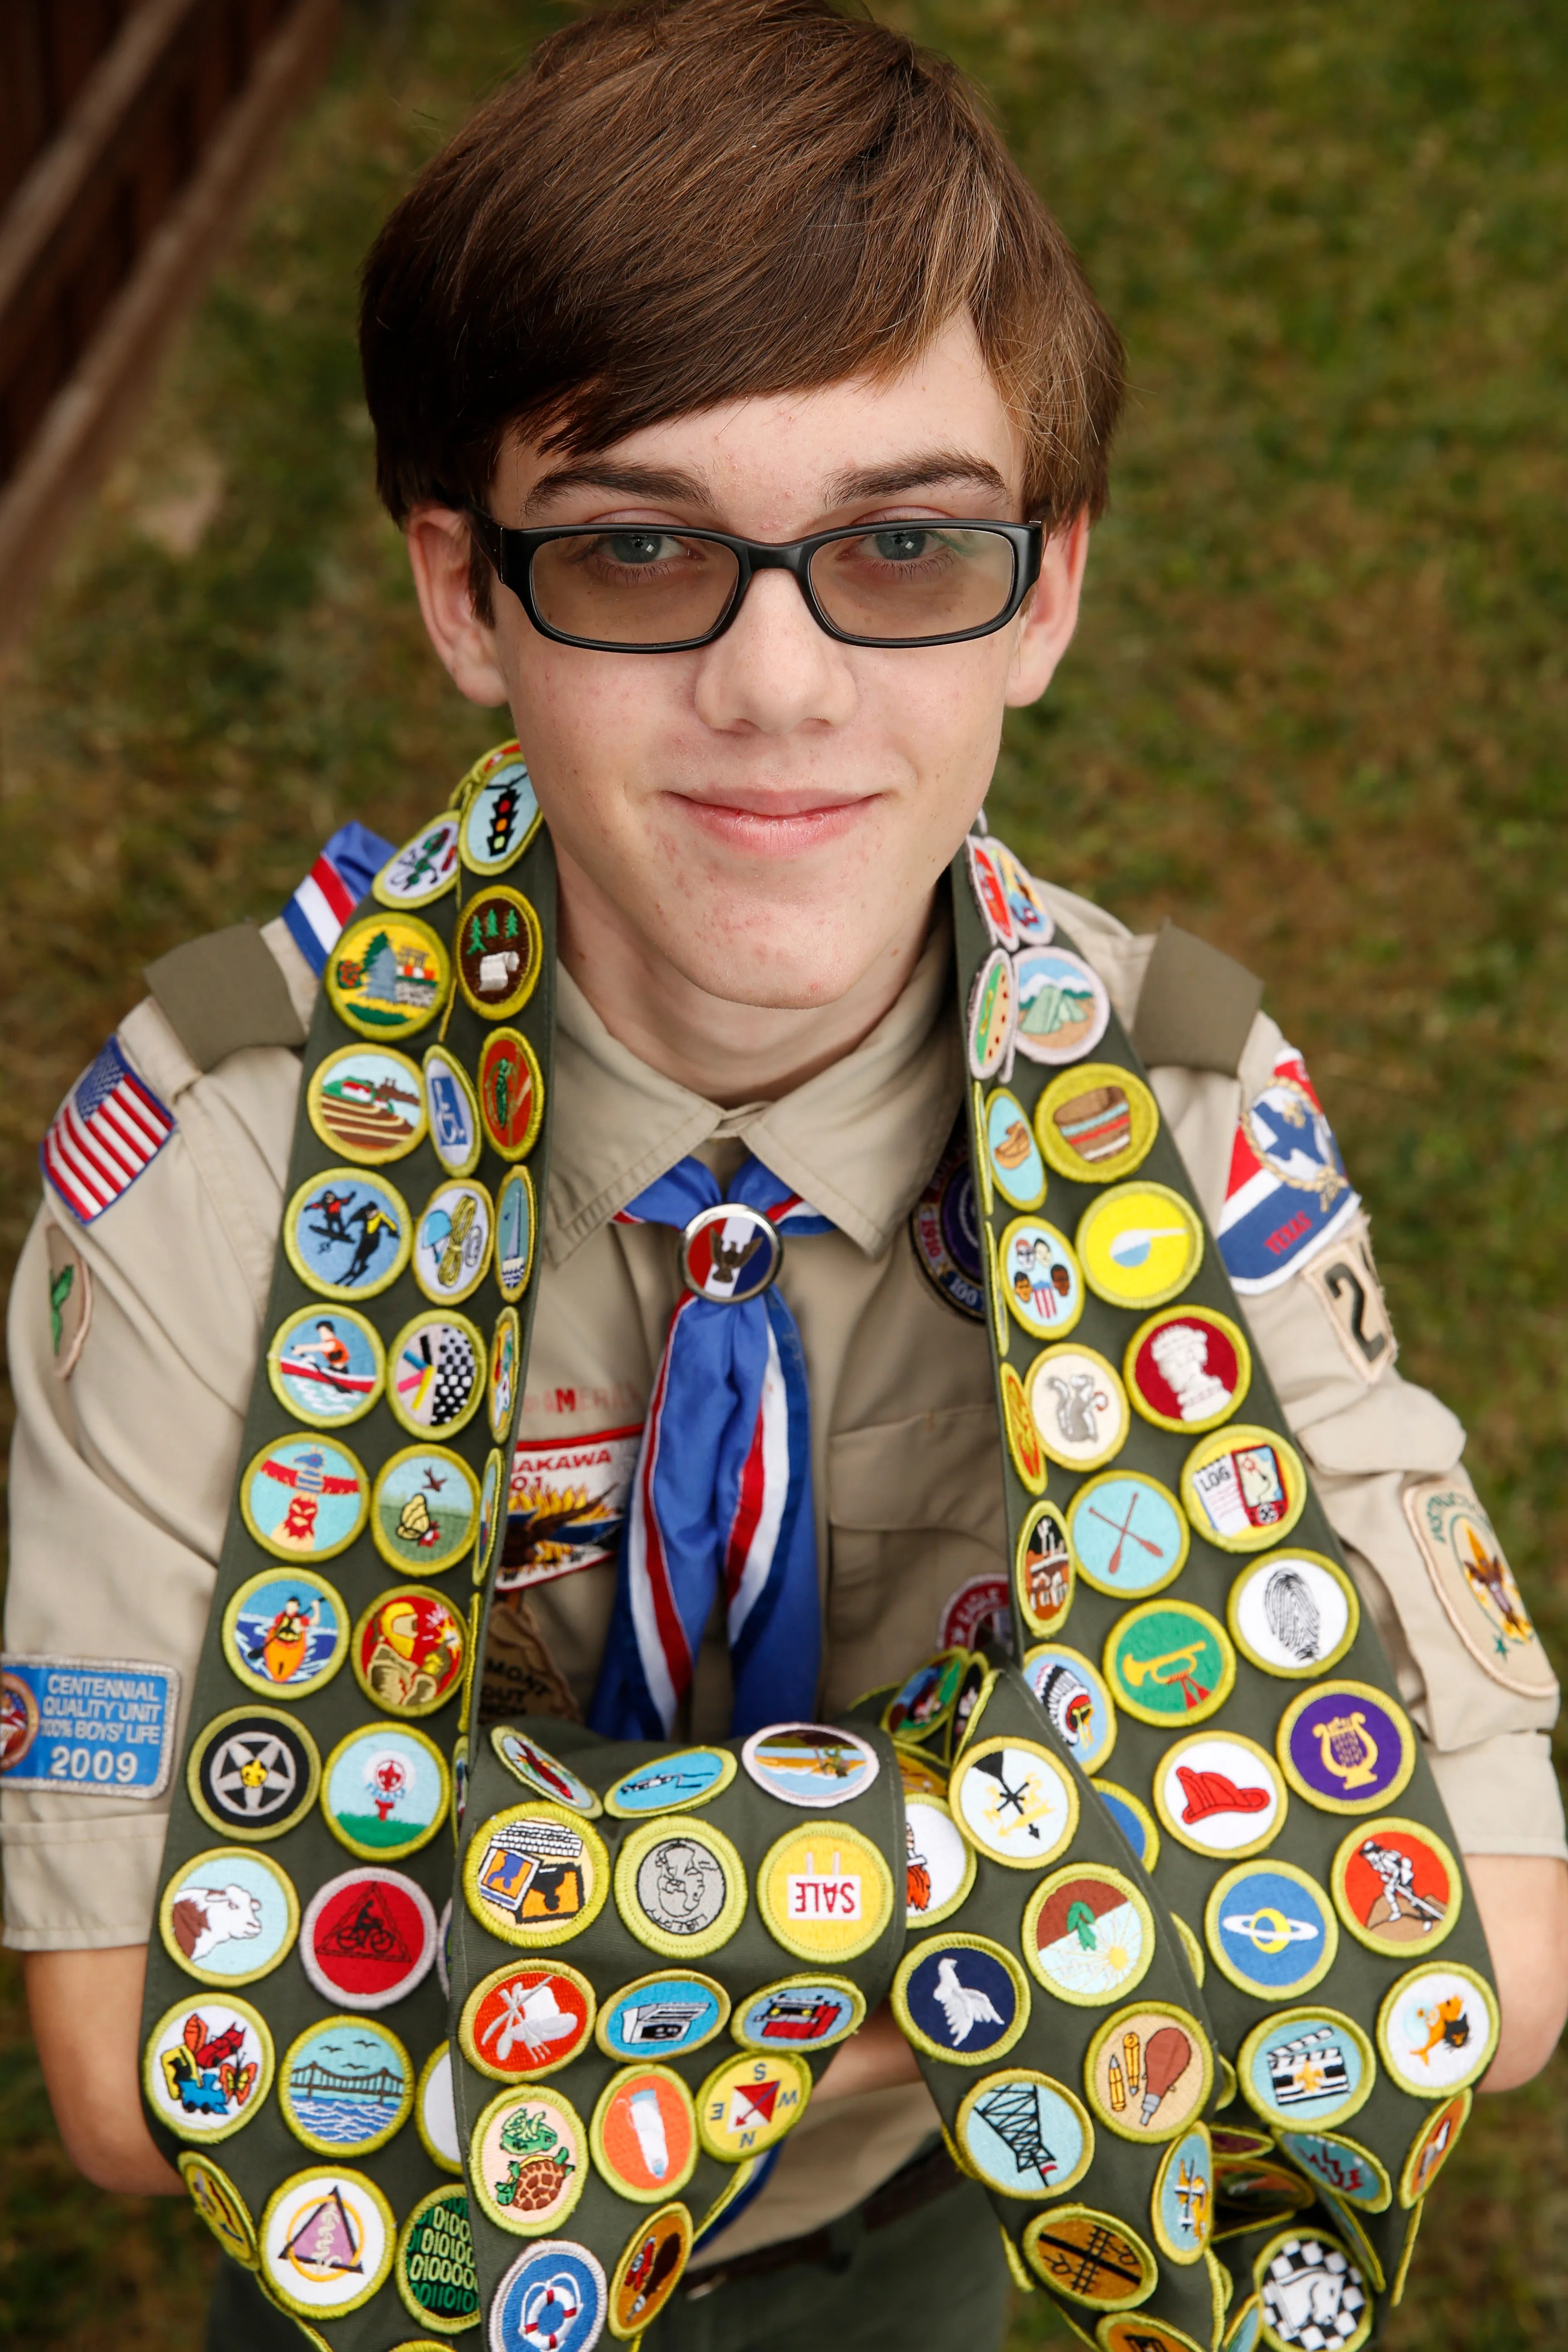 Accomplished Texas Boy Scout Earns All 137 Merit Badges